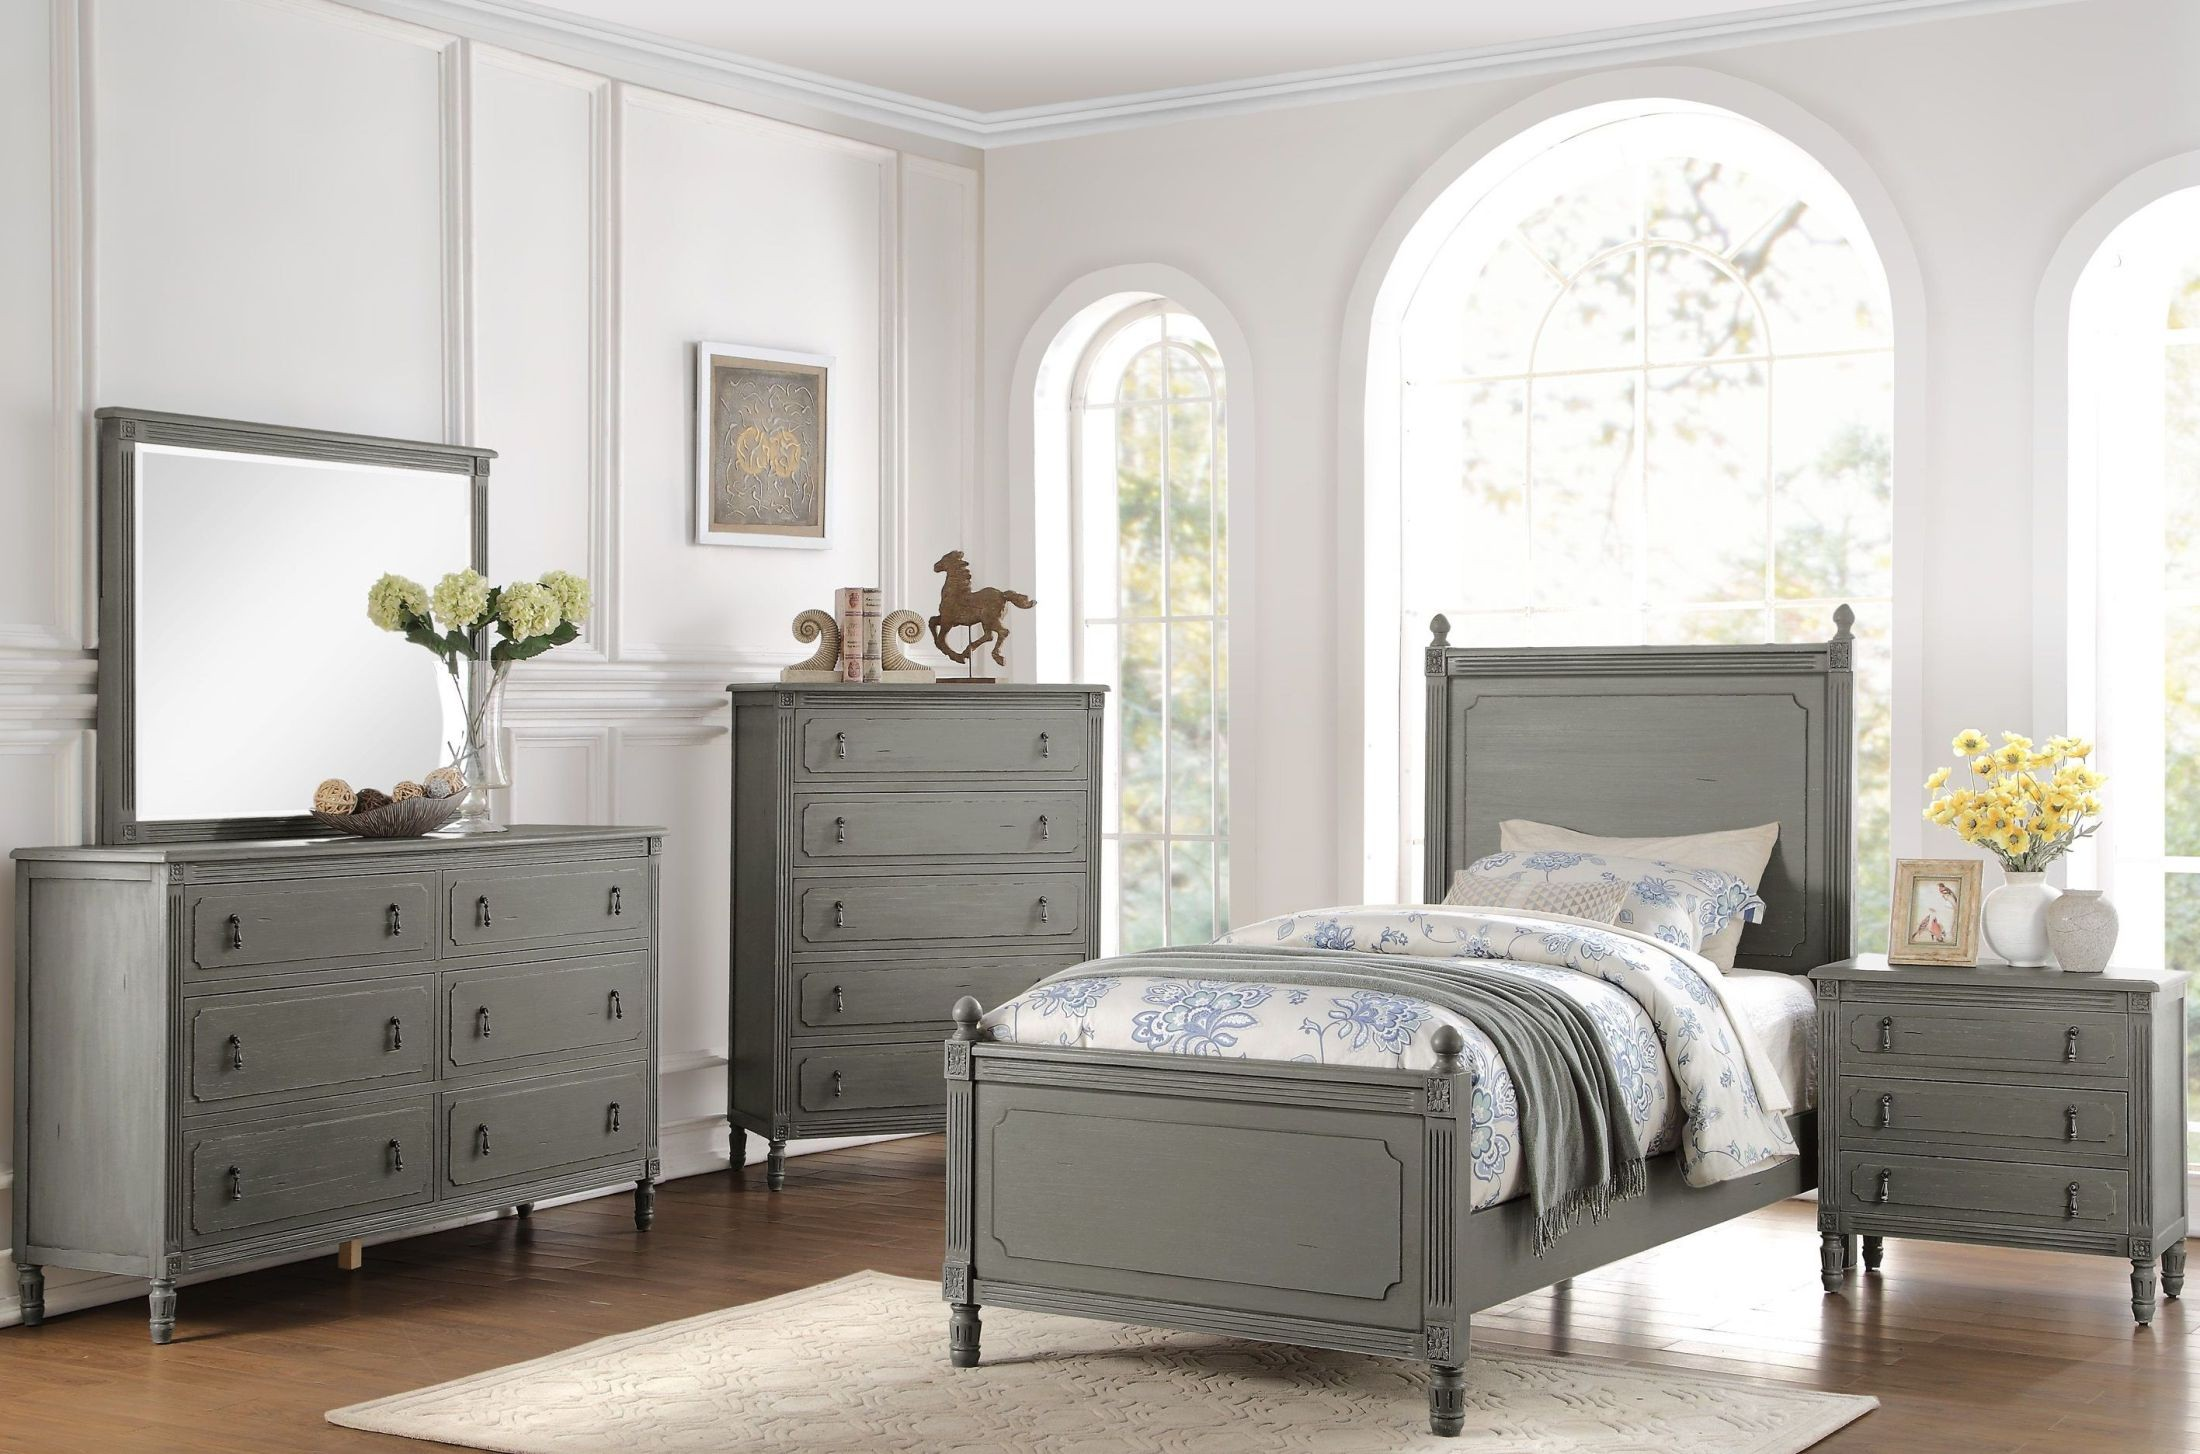 aviana grey youth poster bedroom set from homelegance coleman furniture. Black Bedroom Furniture Sets. Home Design Ideas